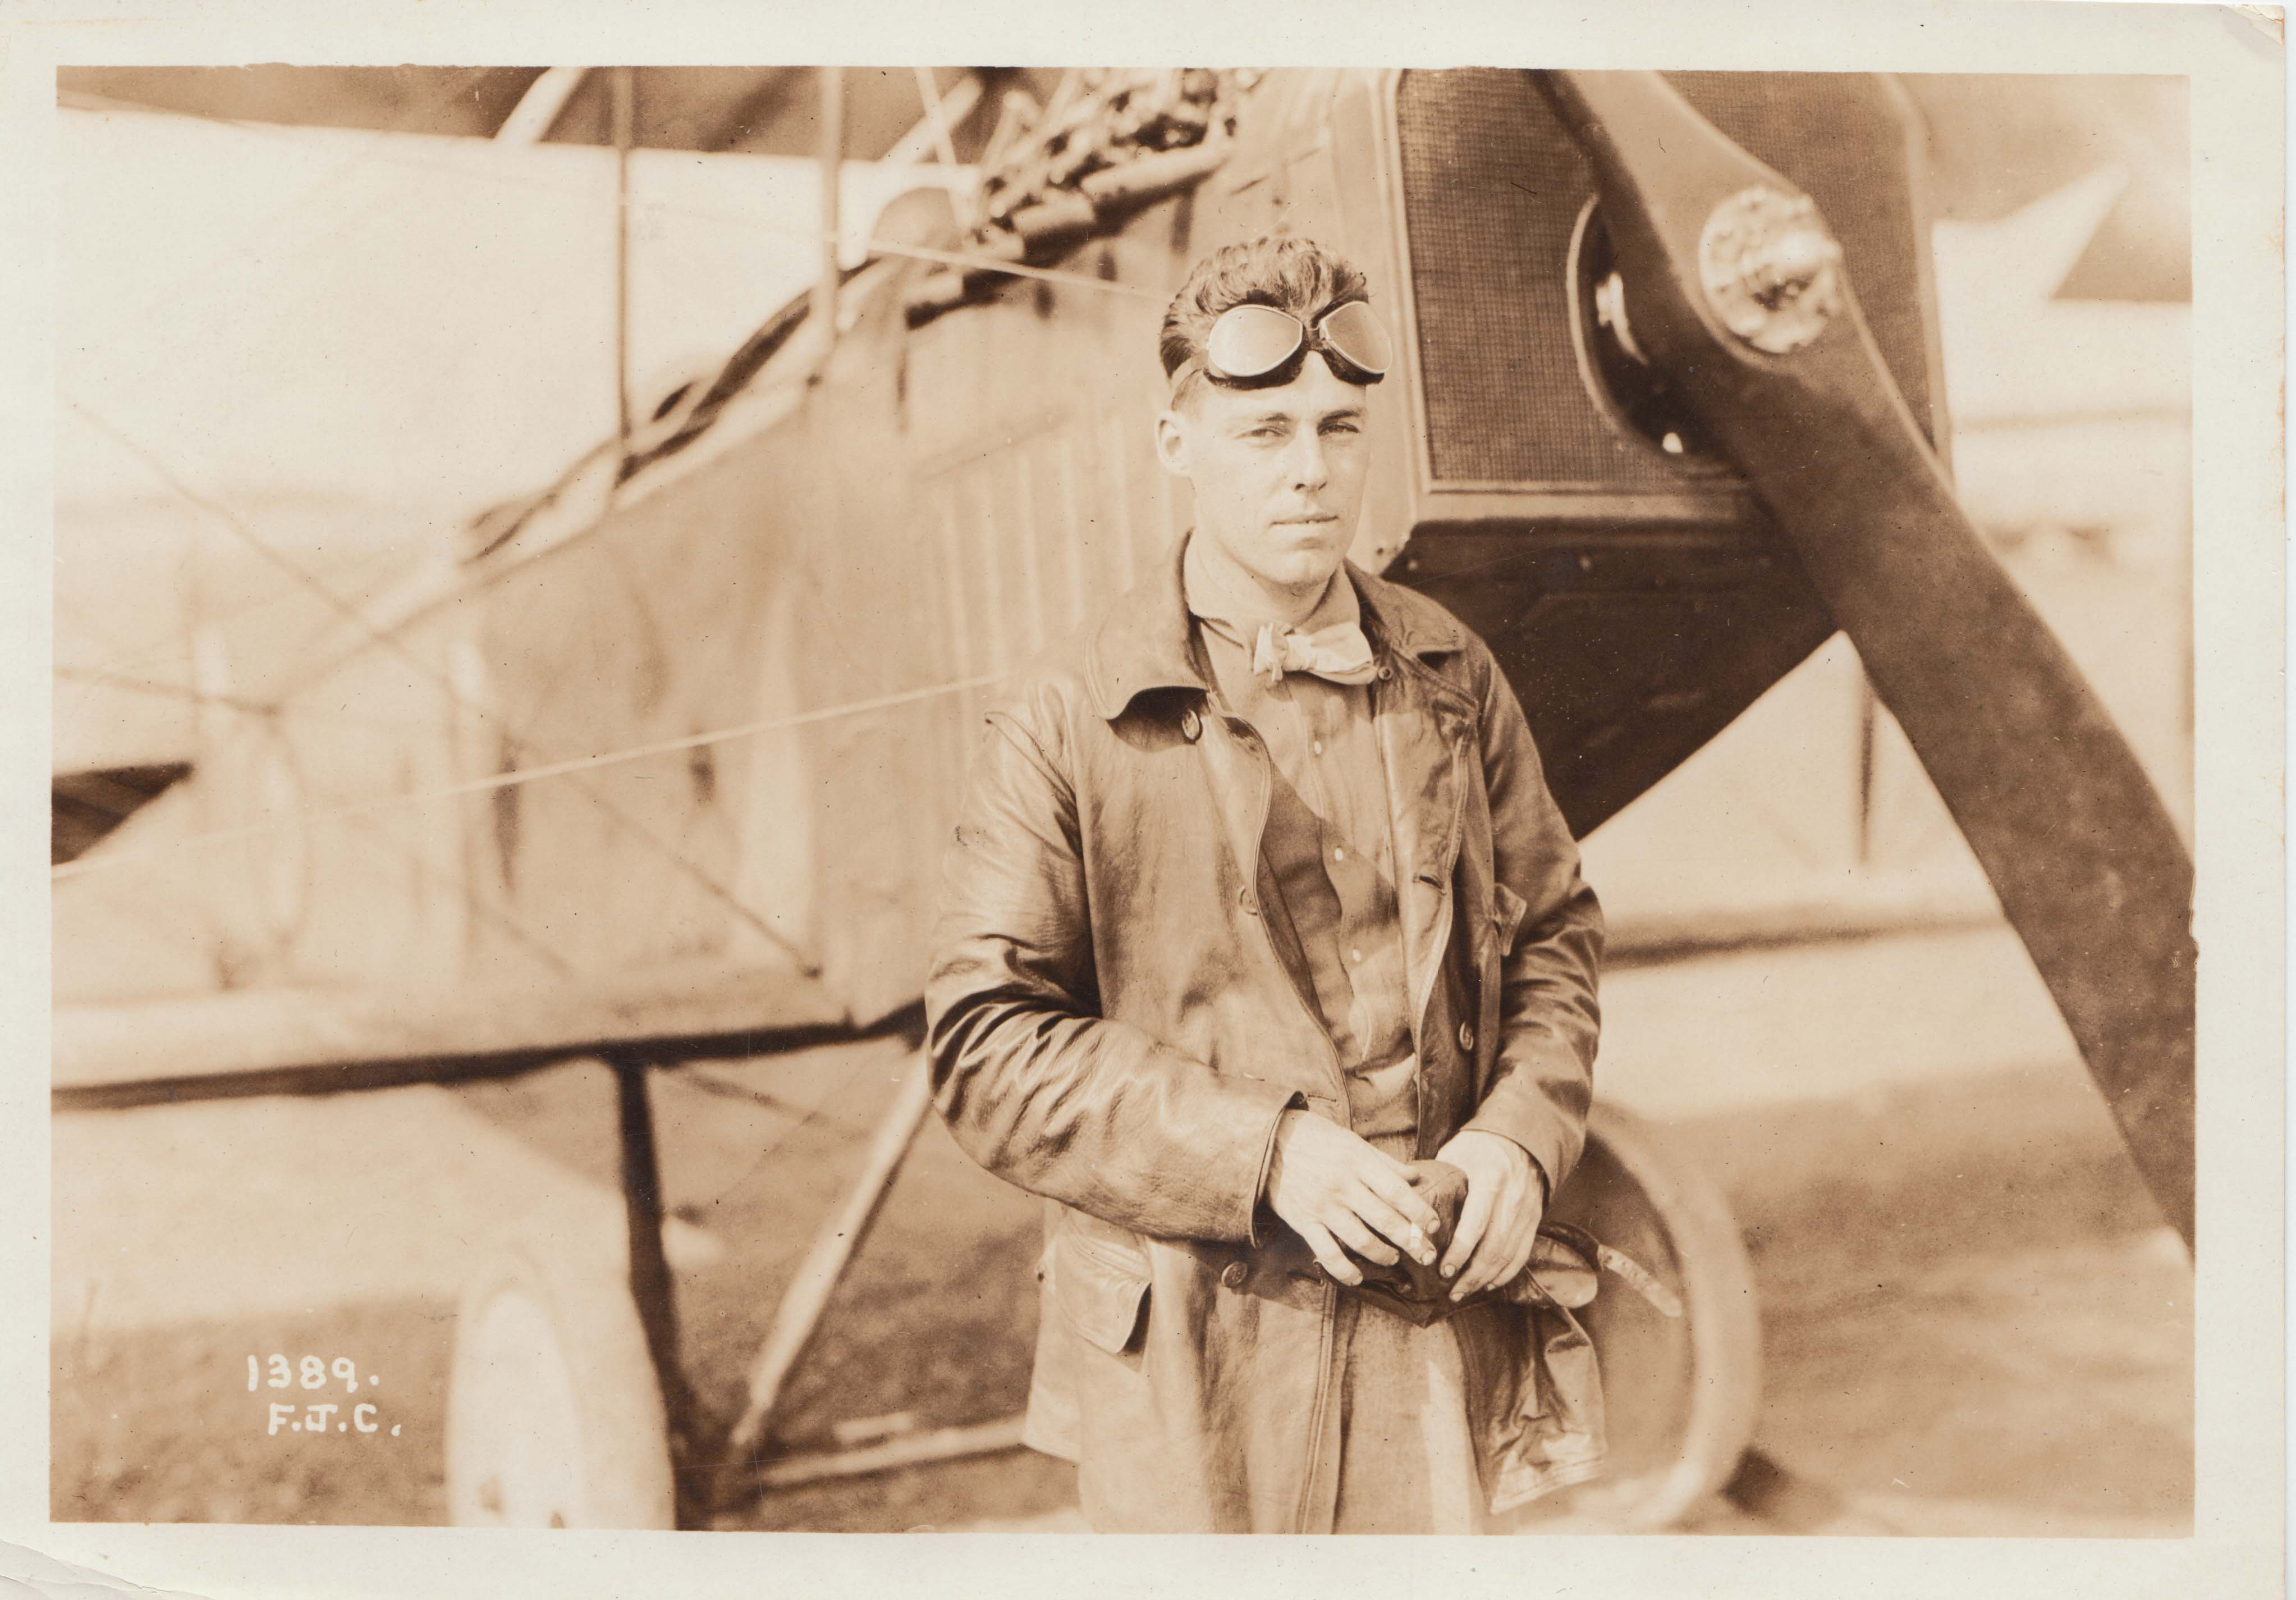 0263 Pilot in front of plane with goggles